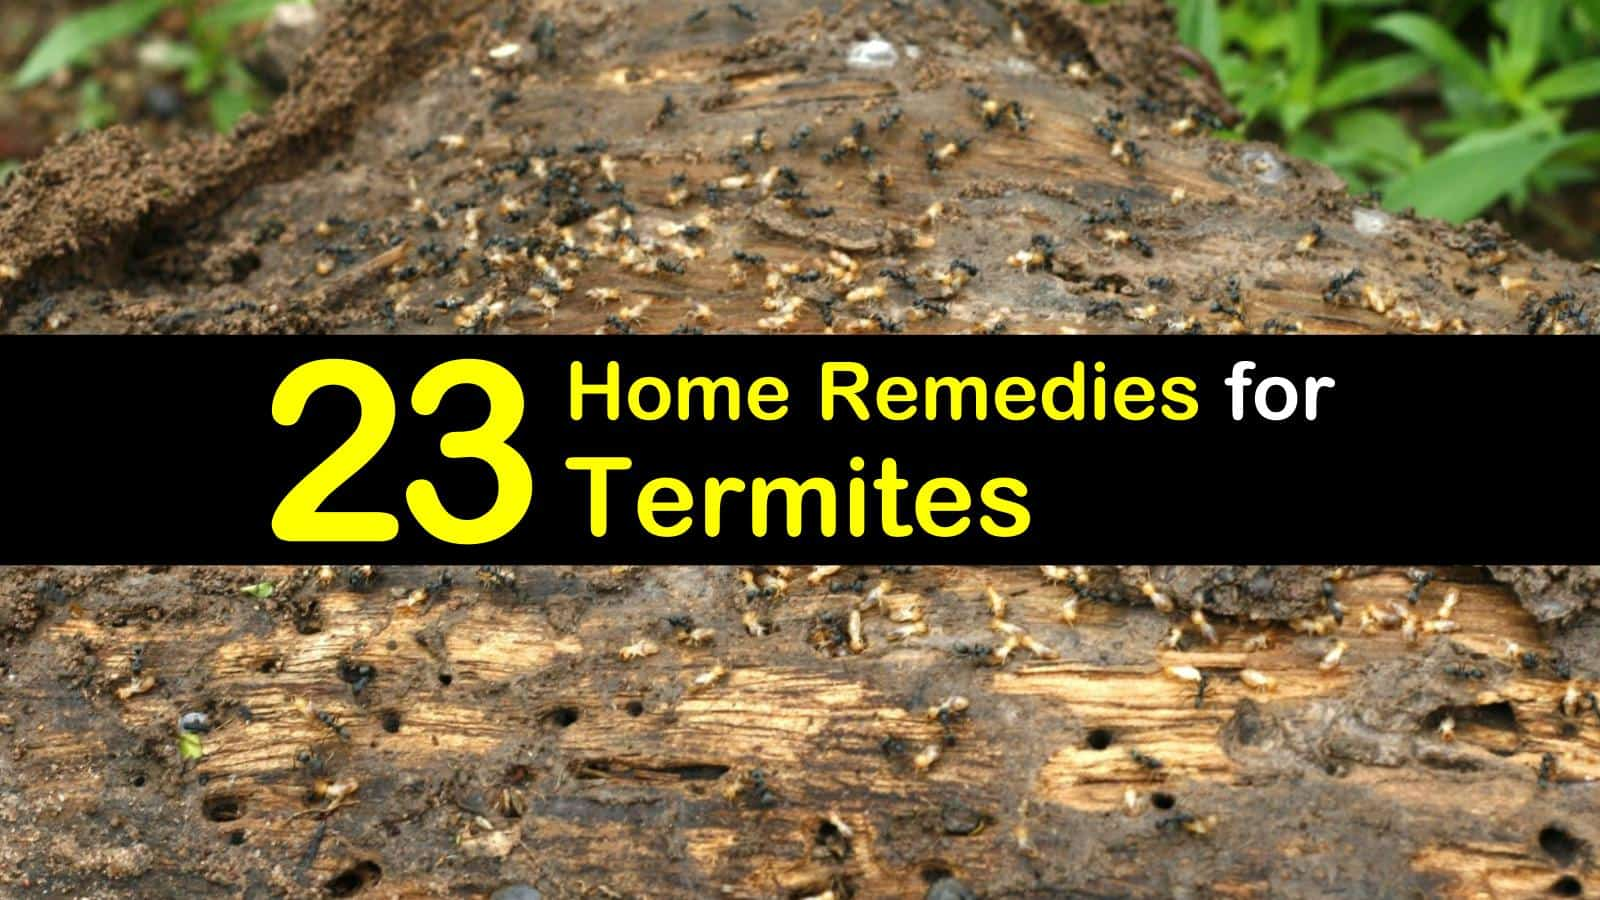 home remedies for termites titleimg1